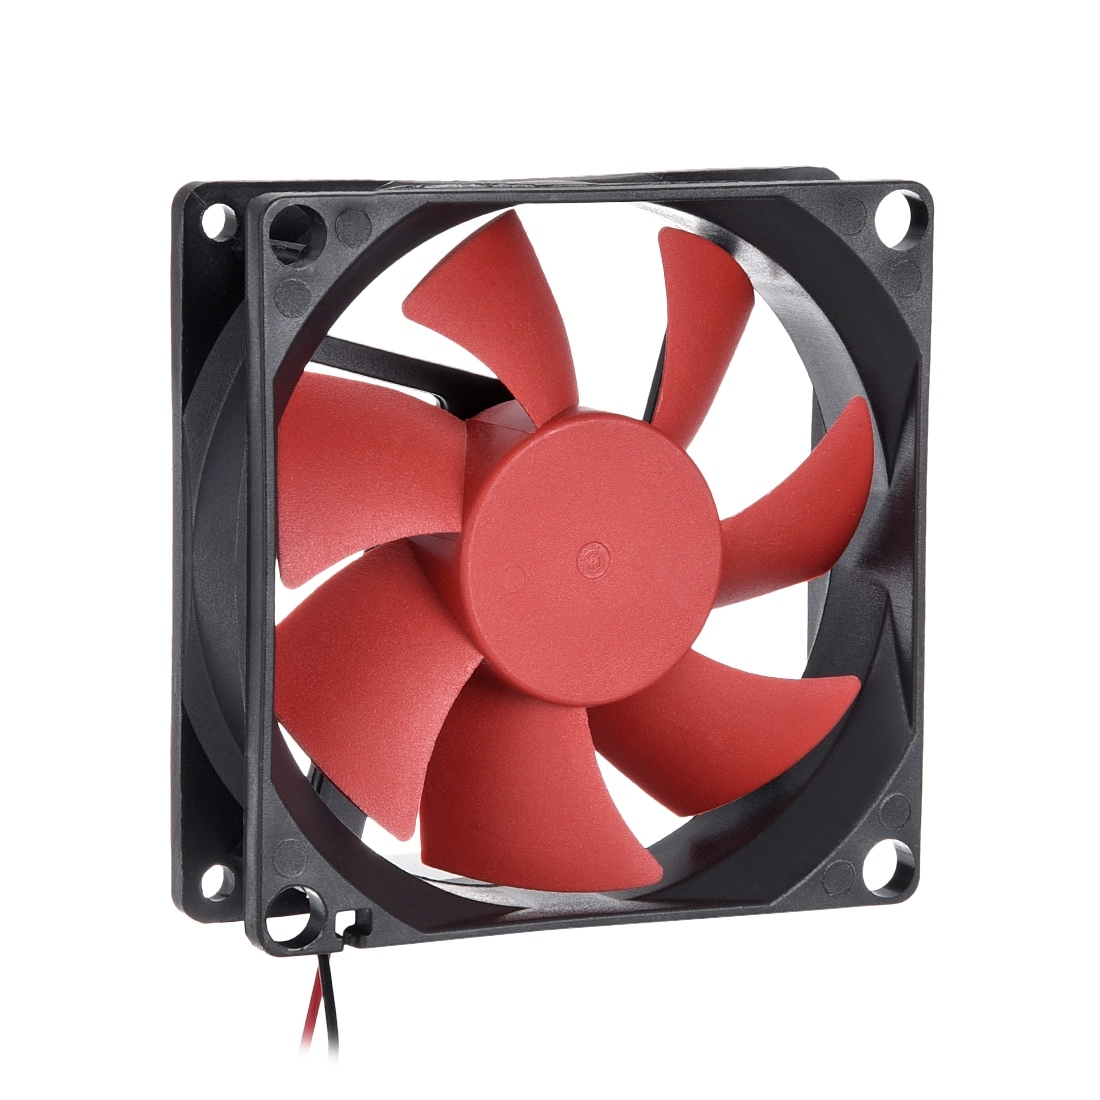 80mm x 25mm Red LED Fan 3 /& 4 pin connector For Intel AMD System